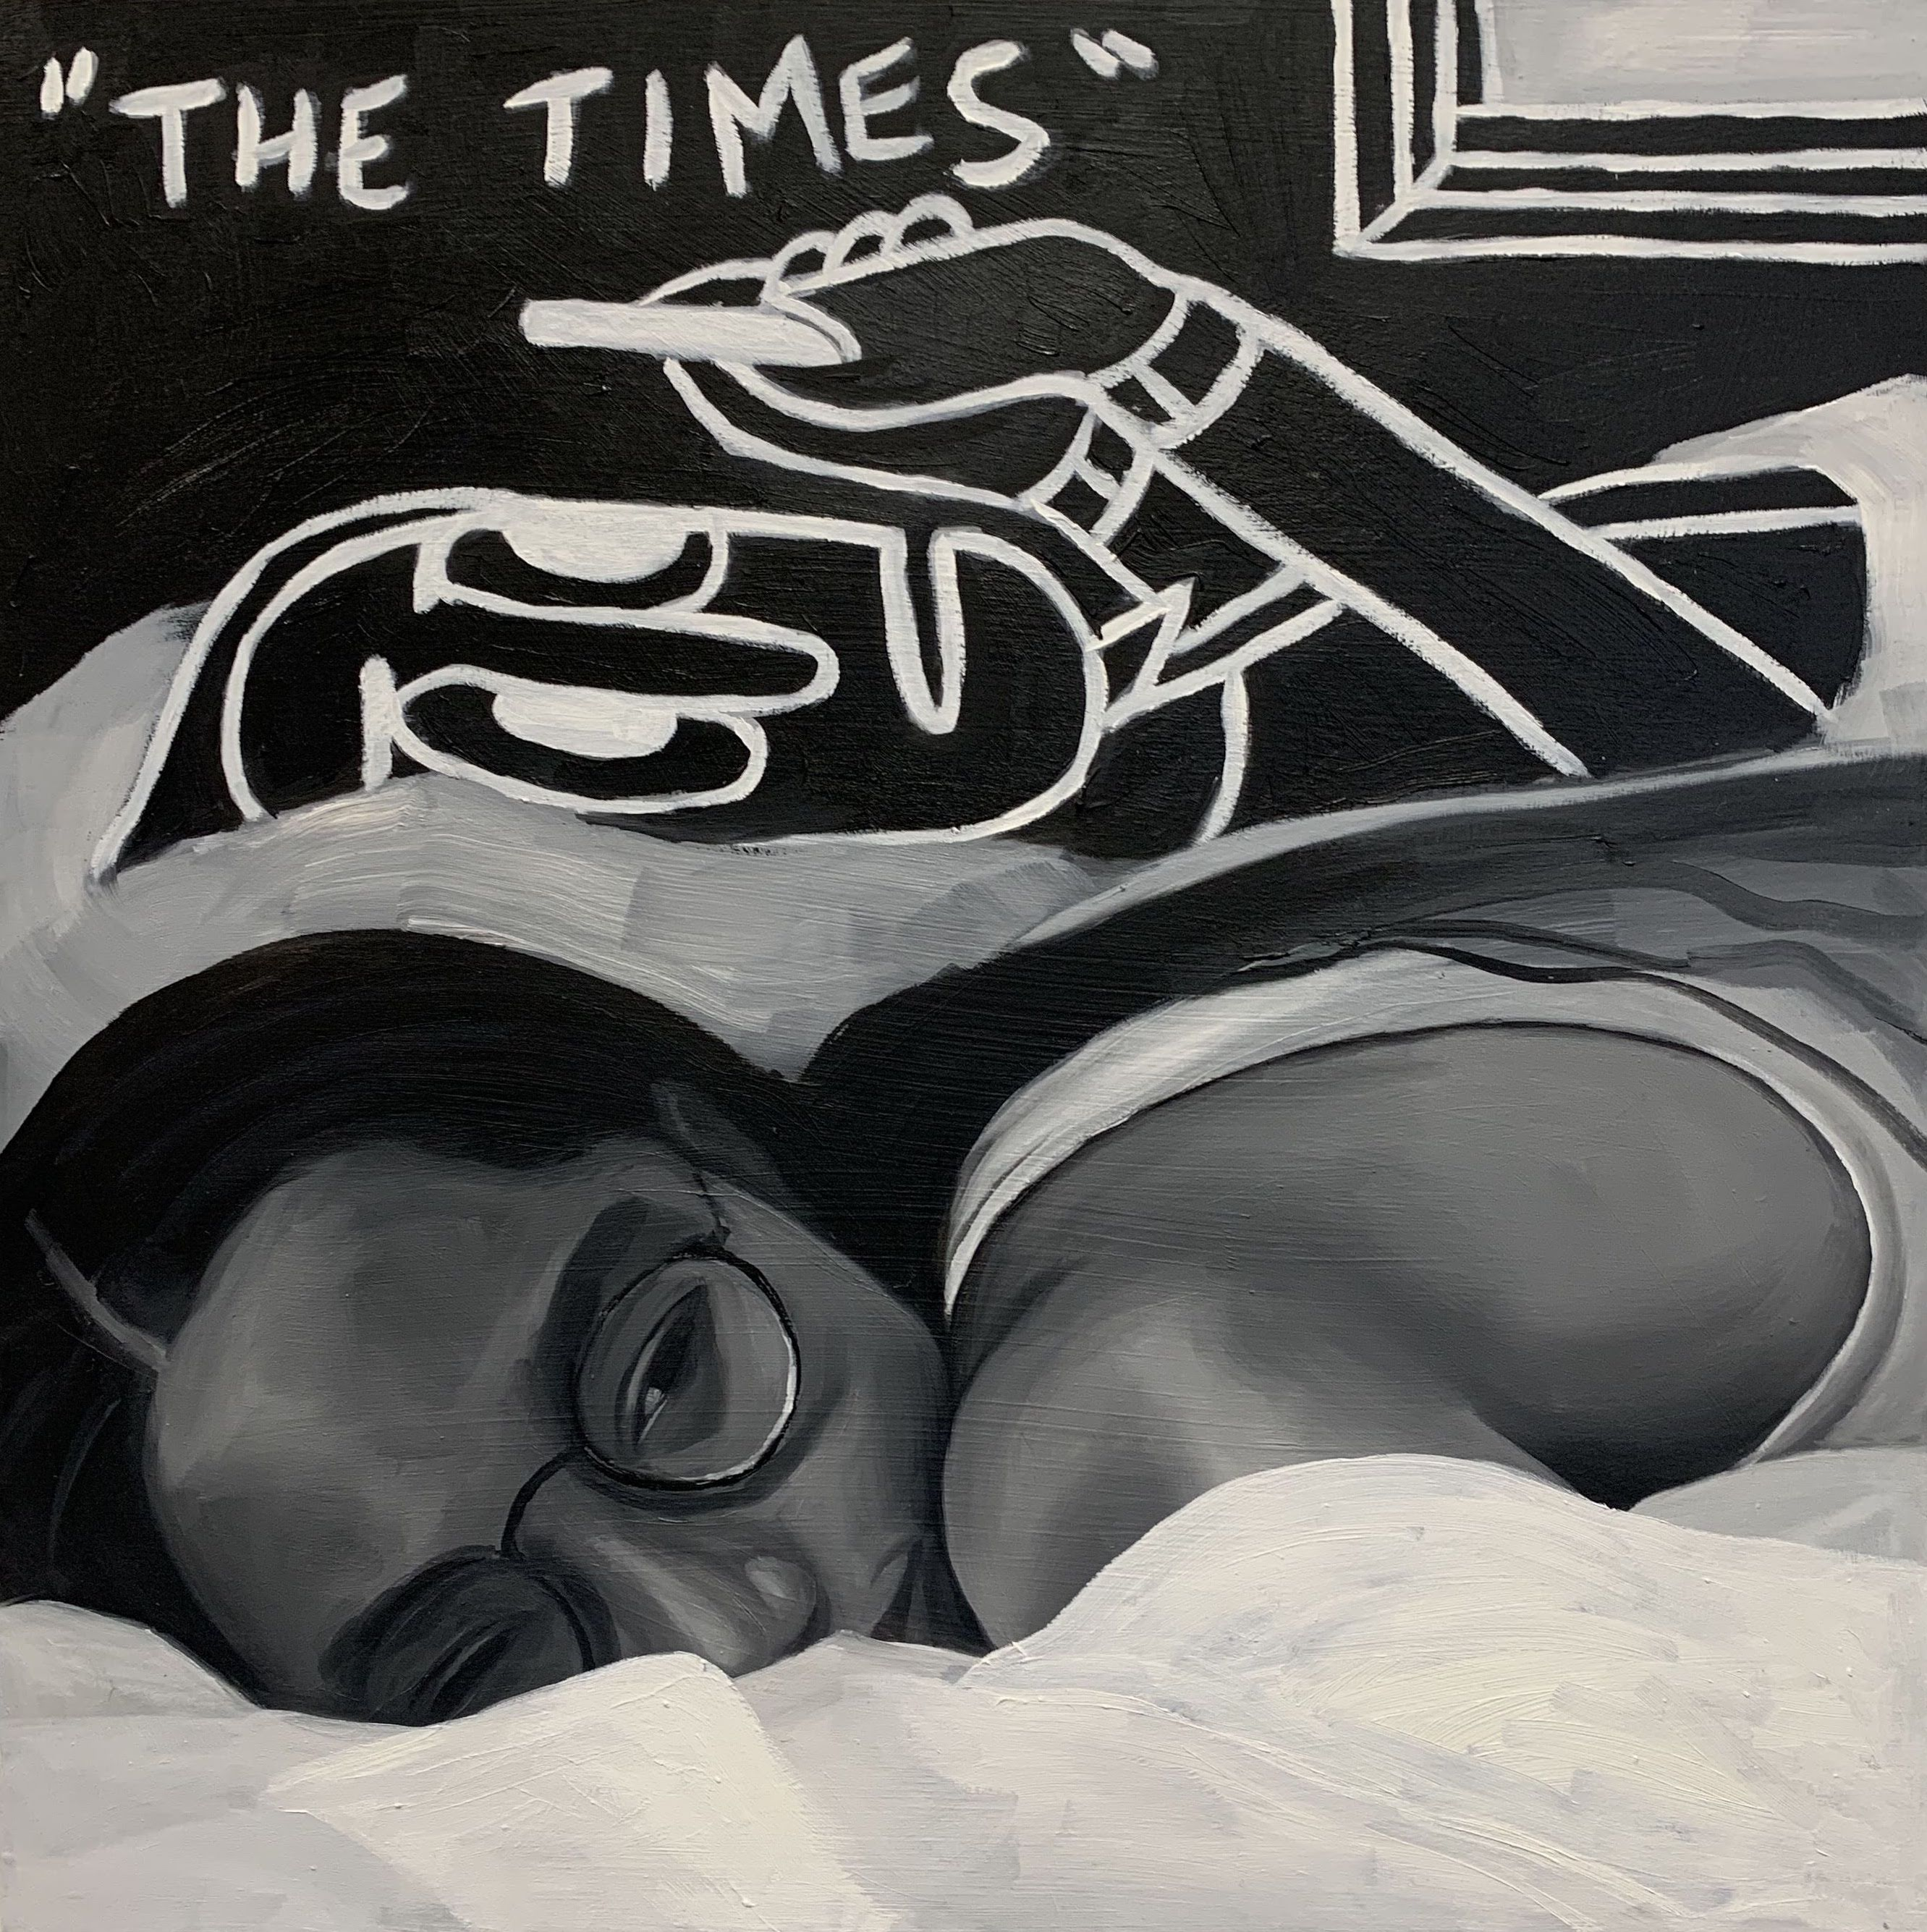 Brittany Tucker.<em> The Times</em>, 2019. Oil on panel, 12 x 12 inches (30.5 x 30.5 cm)